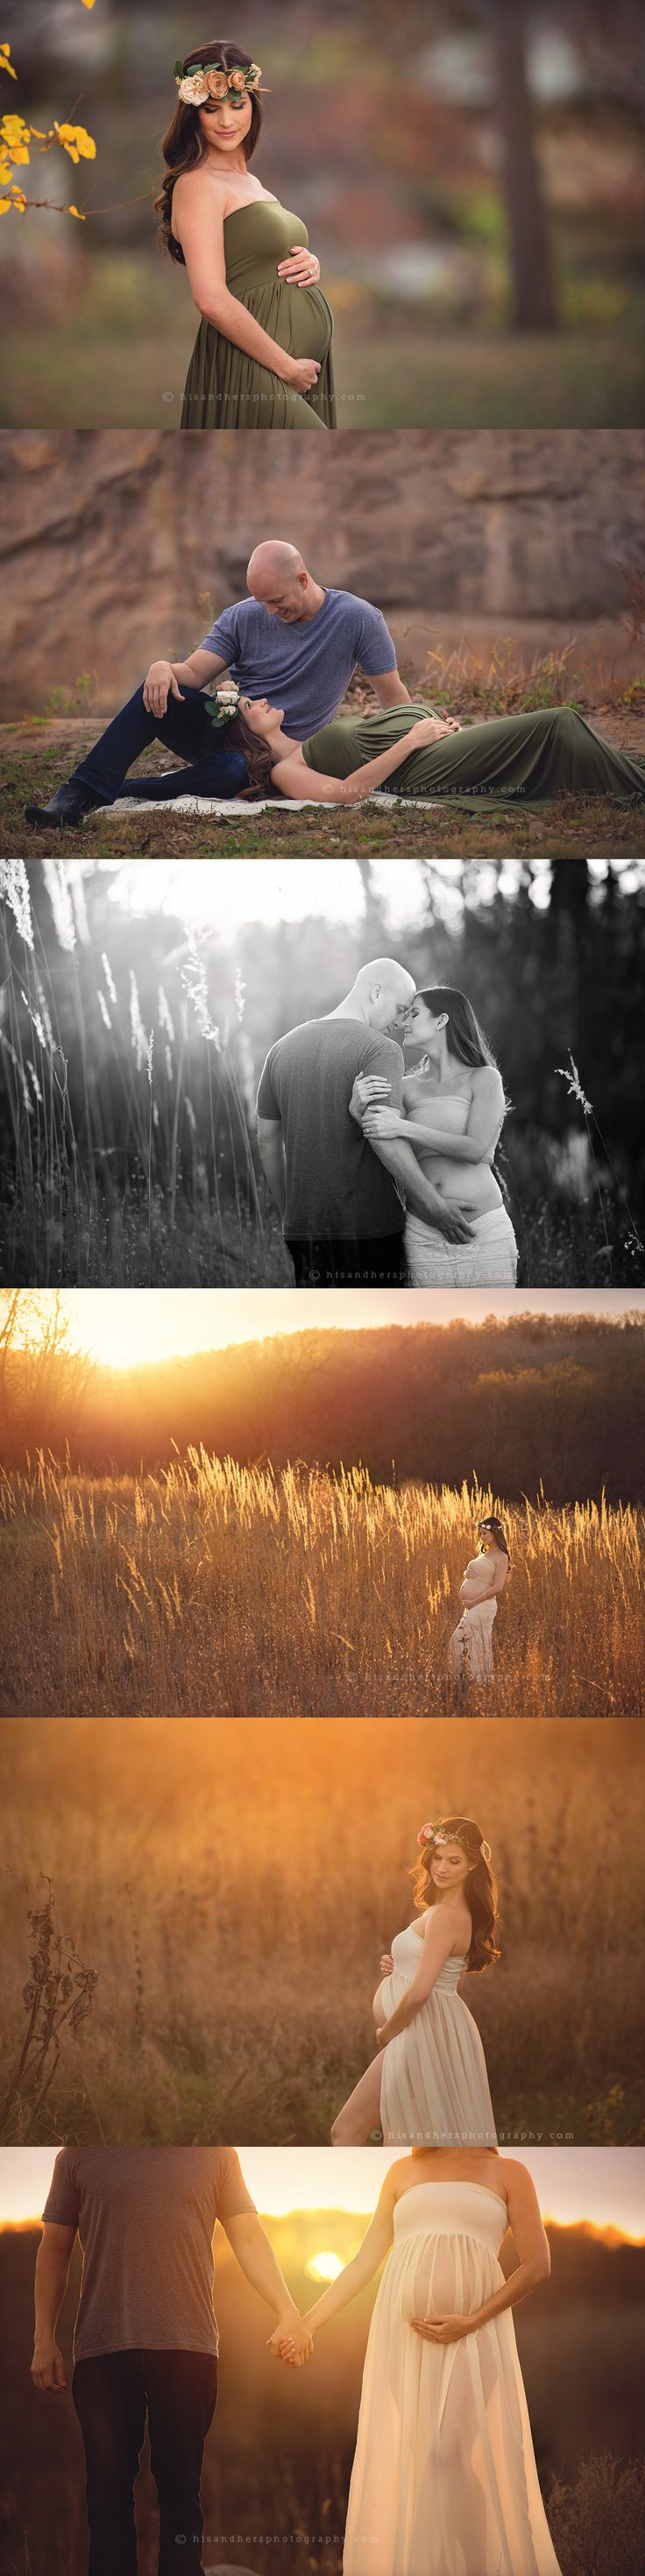 maternity portraits | His & Hers Photography, Des Moines, Iowa | Photographer Darcy Milder #desmoines #iowa #pregnancy #maternity #photographer